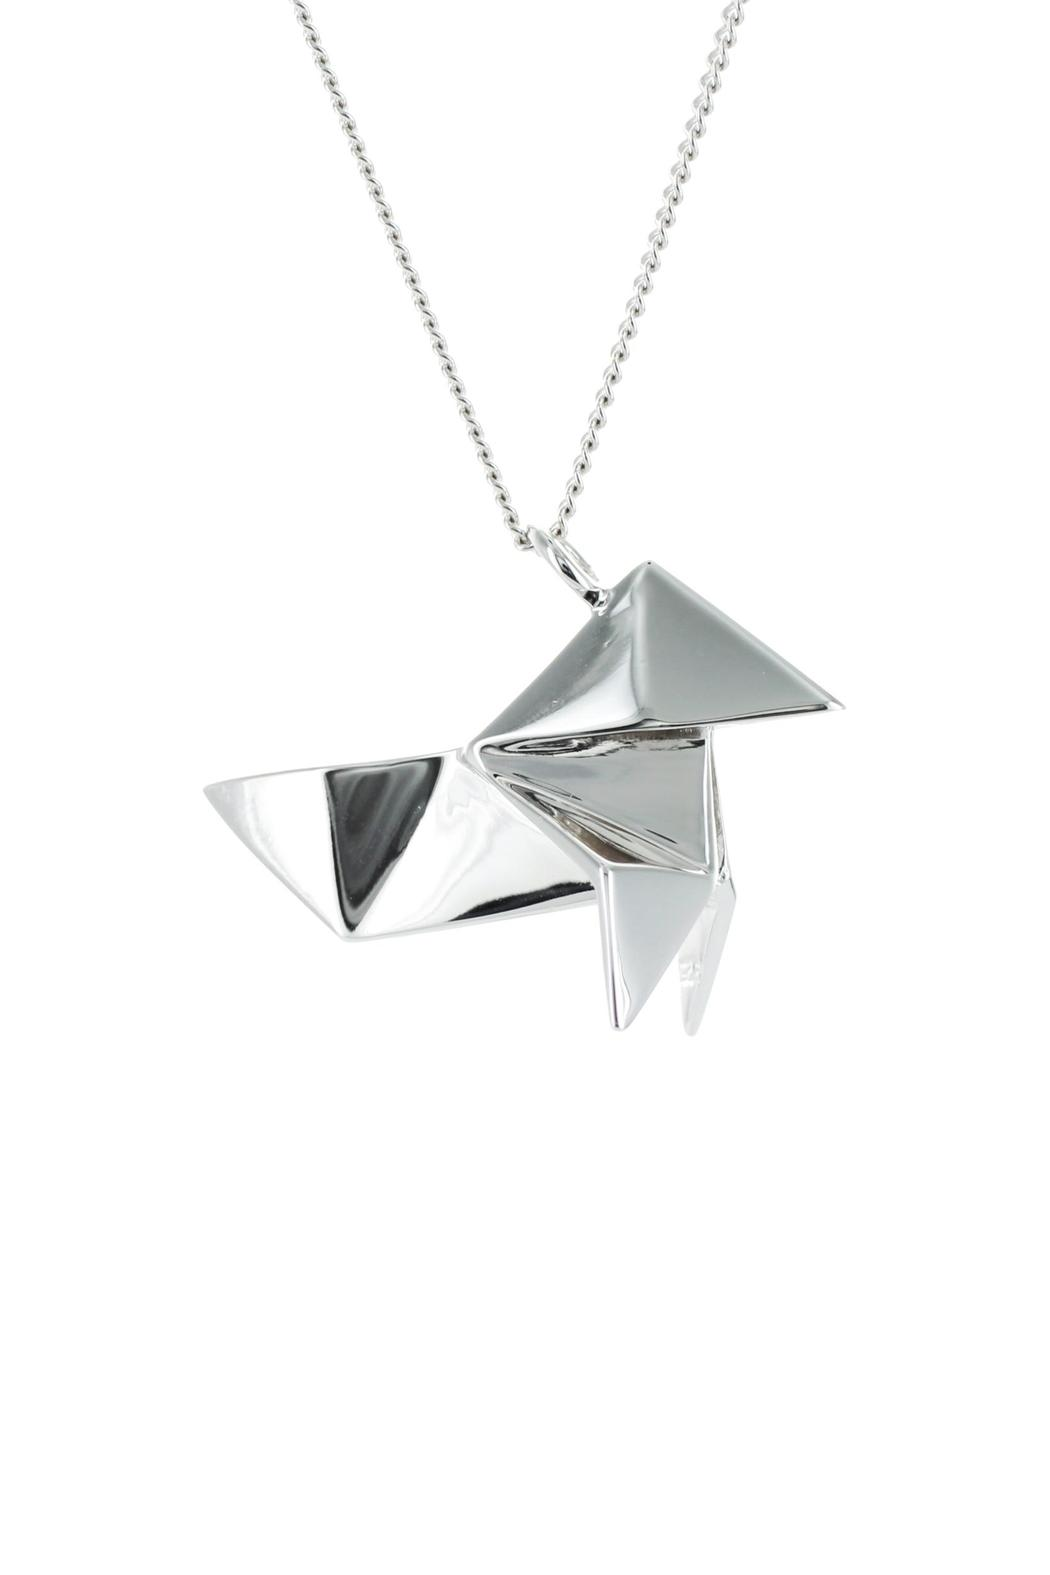 Origami Jewellery Necklace Cuckoo Silver from Paris by ... - photo#35